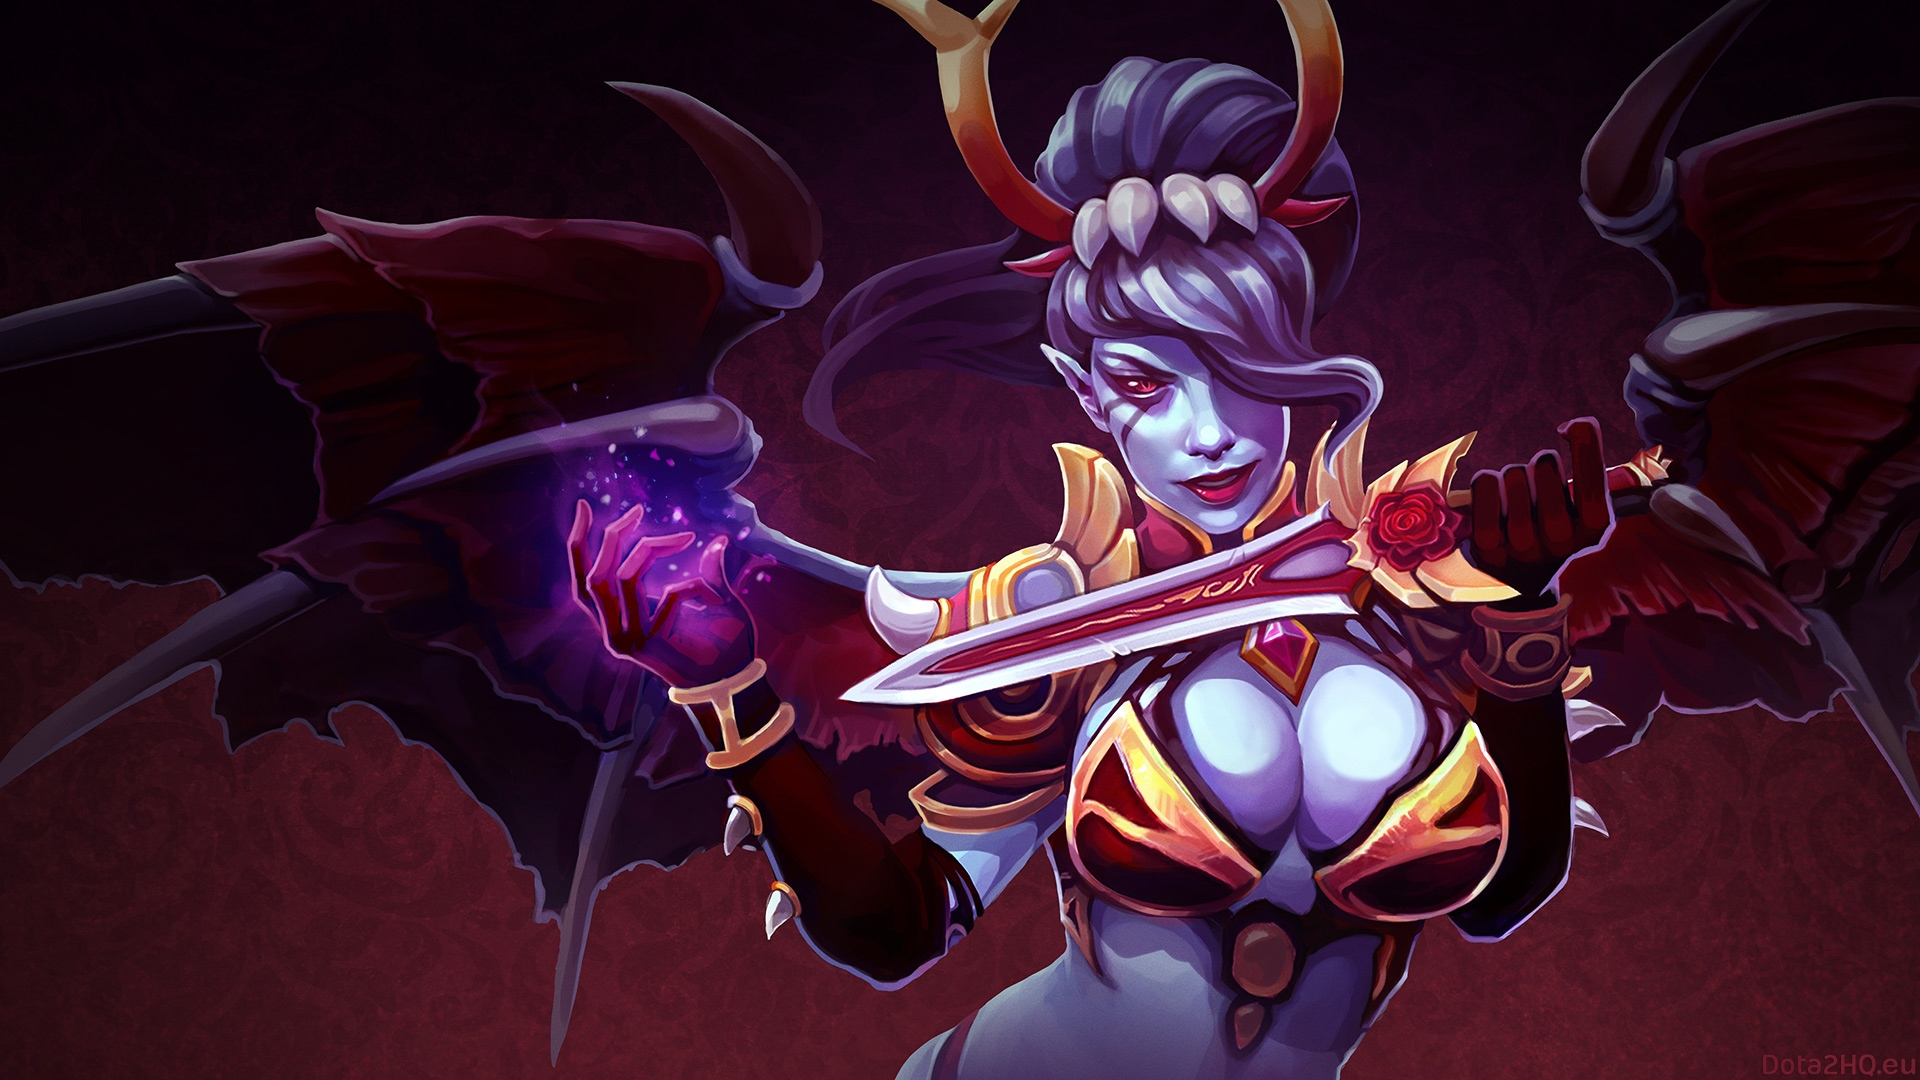 Dota 2 Queen Of Pain Wallpapers Desktop Background Is Cool Wallpapers